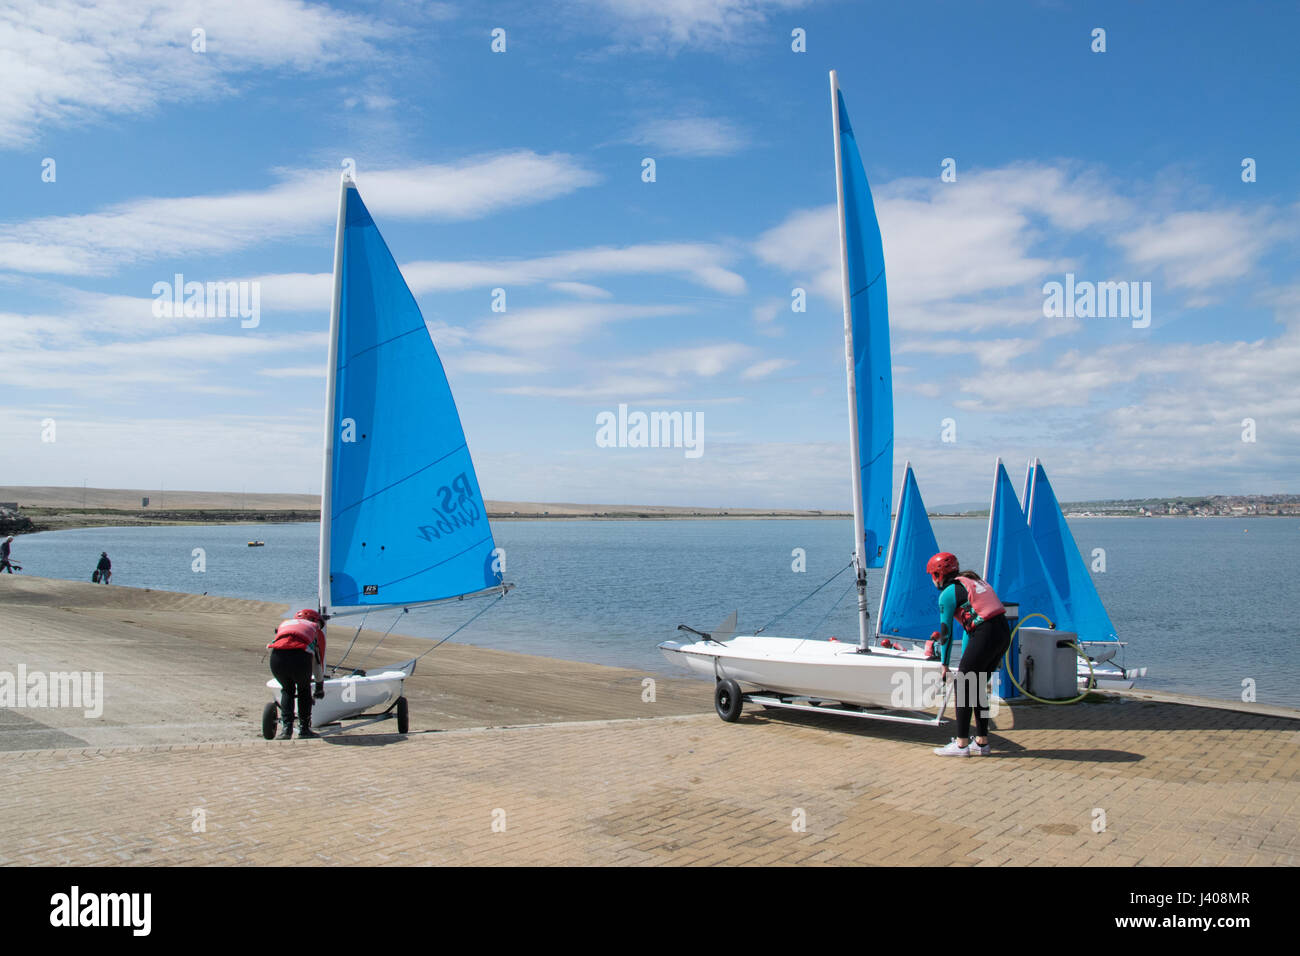 WEYMOUTH PORTLAND NATIONAL SAILING ACADEMY Immagini Stock